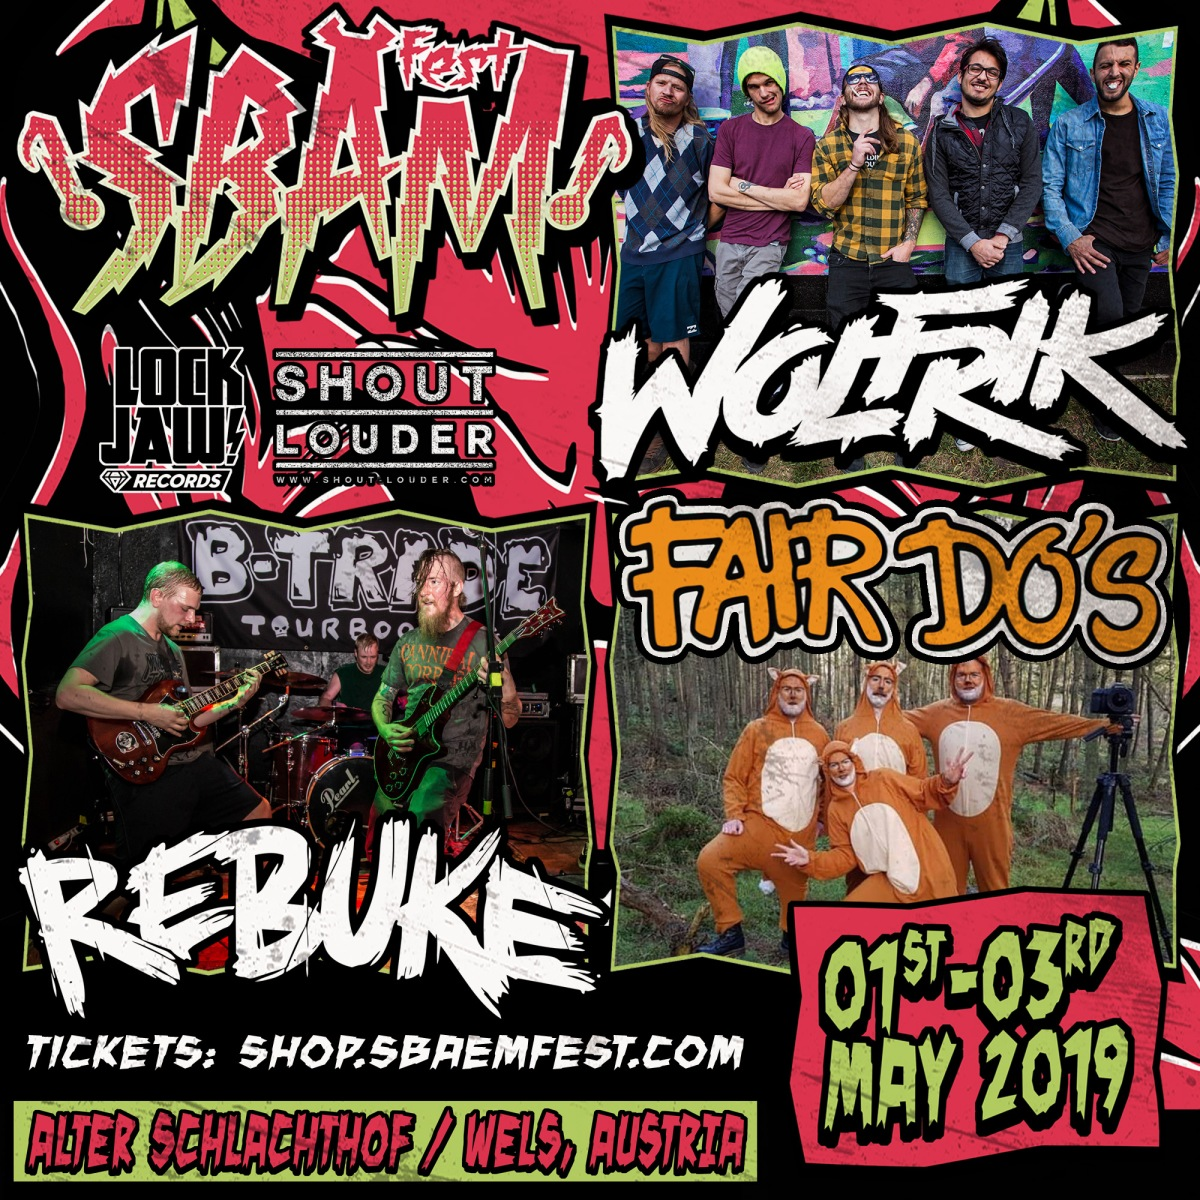 News: SBÄM Fest Announces Fair Do's, Rebuke & Wolfrik